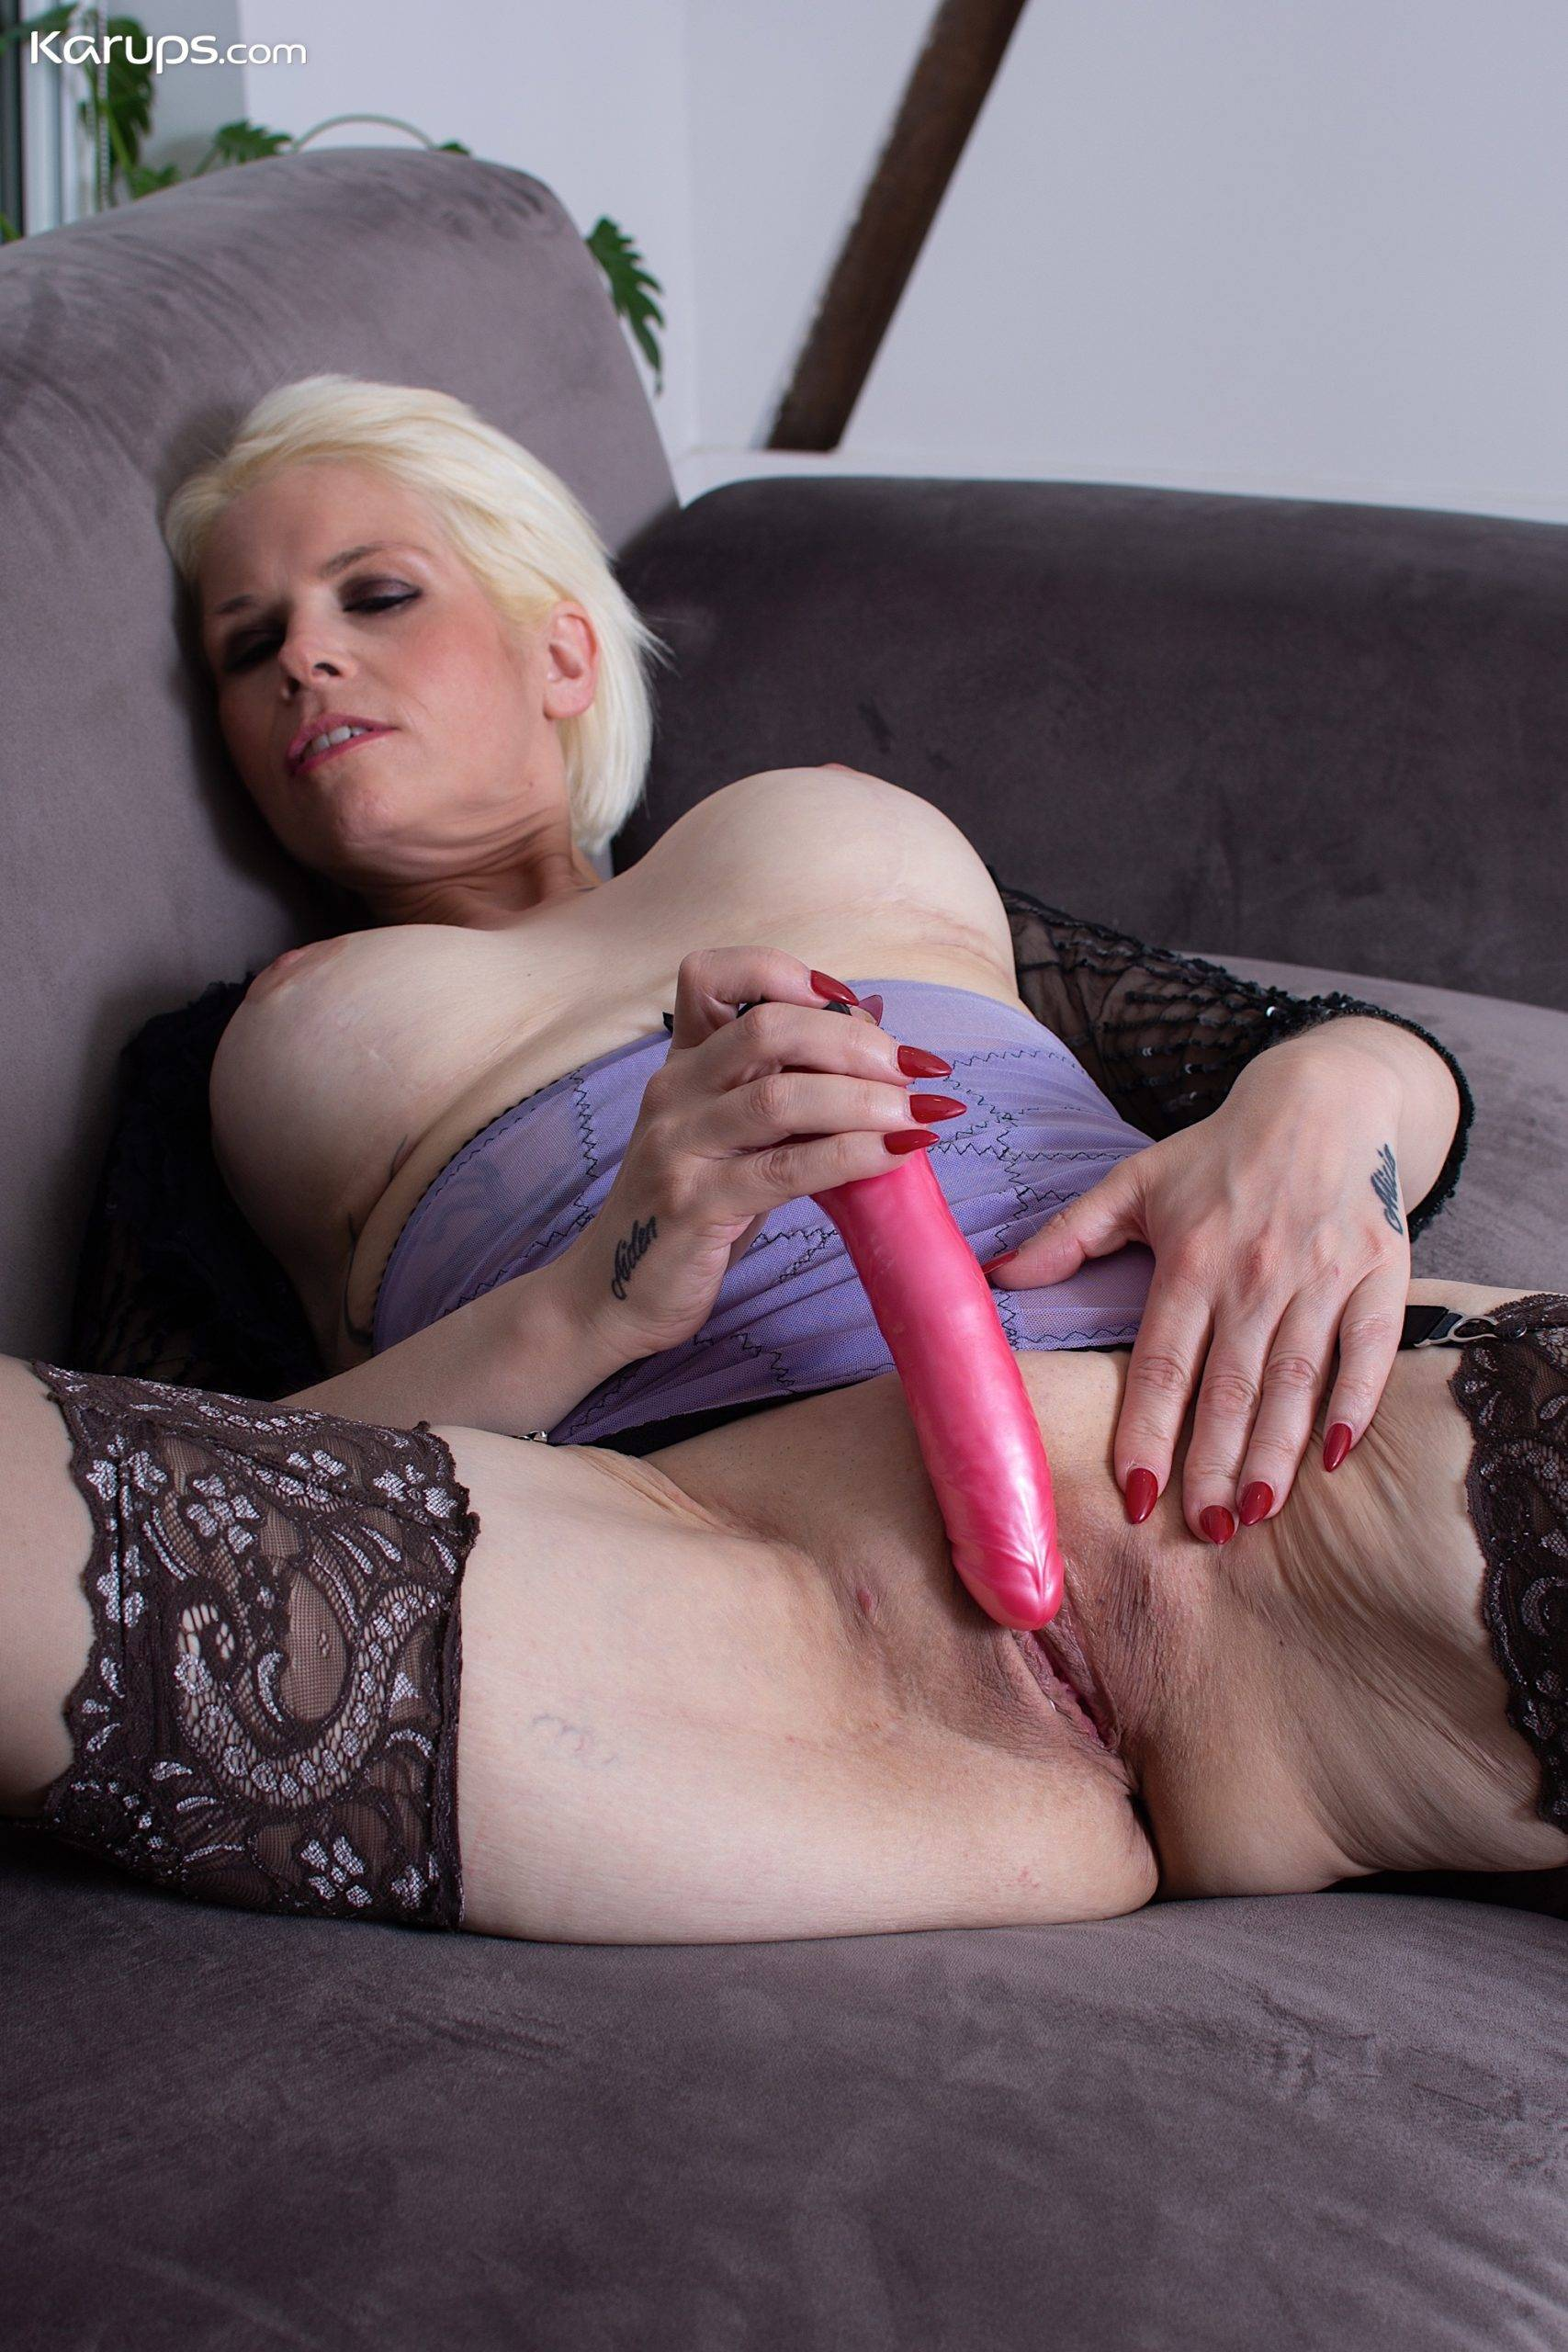 Busty mature babe Skyler Squirt toys her pussy on the couch at Karupsow